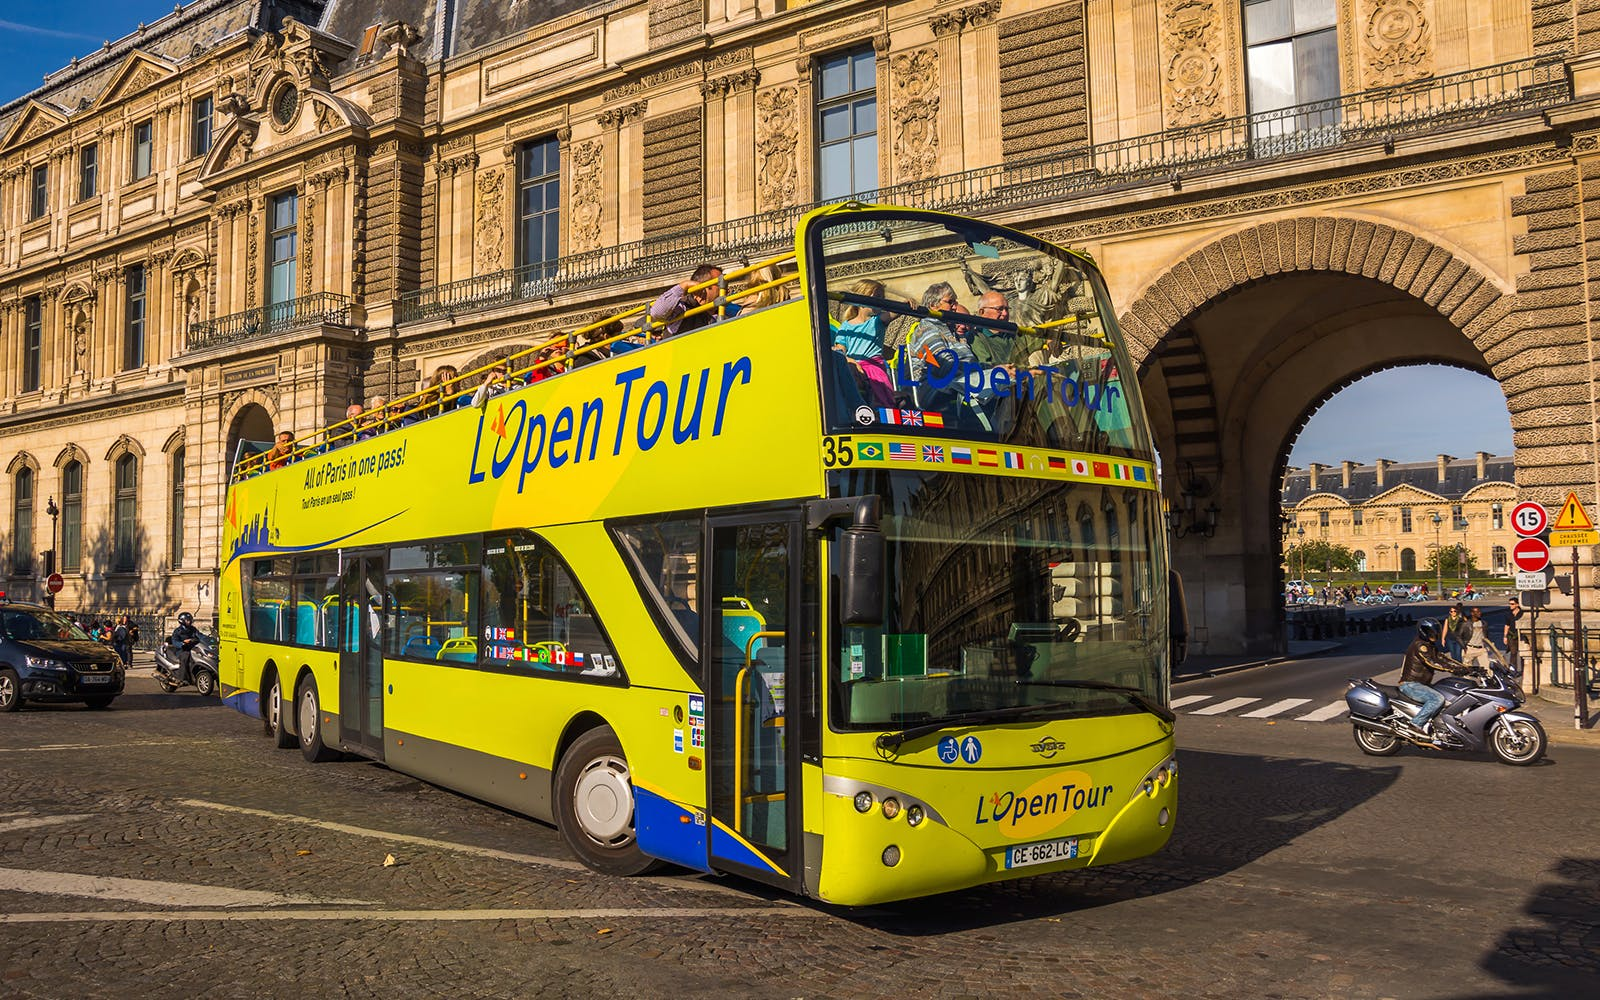 hop-on hop-off - 1 day, 2 day, 3 day paris sightseeing tour-1